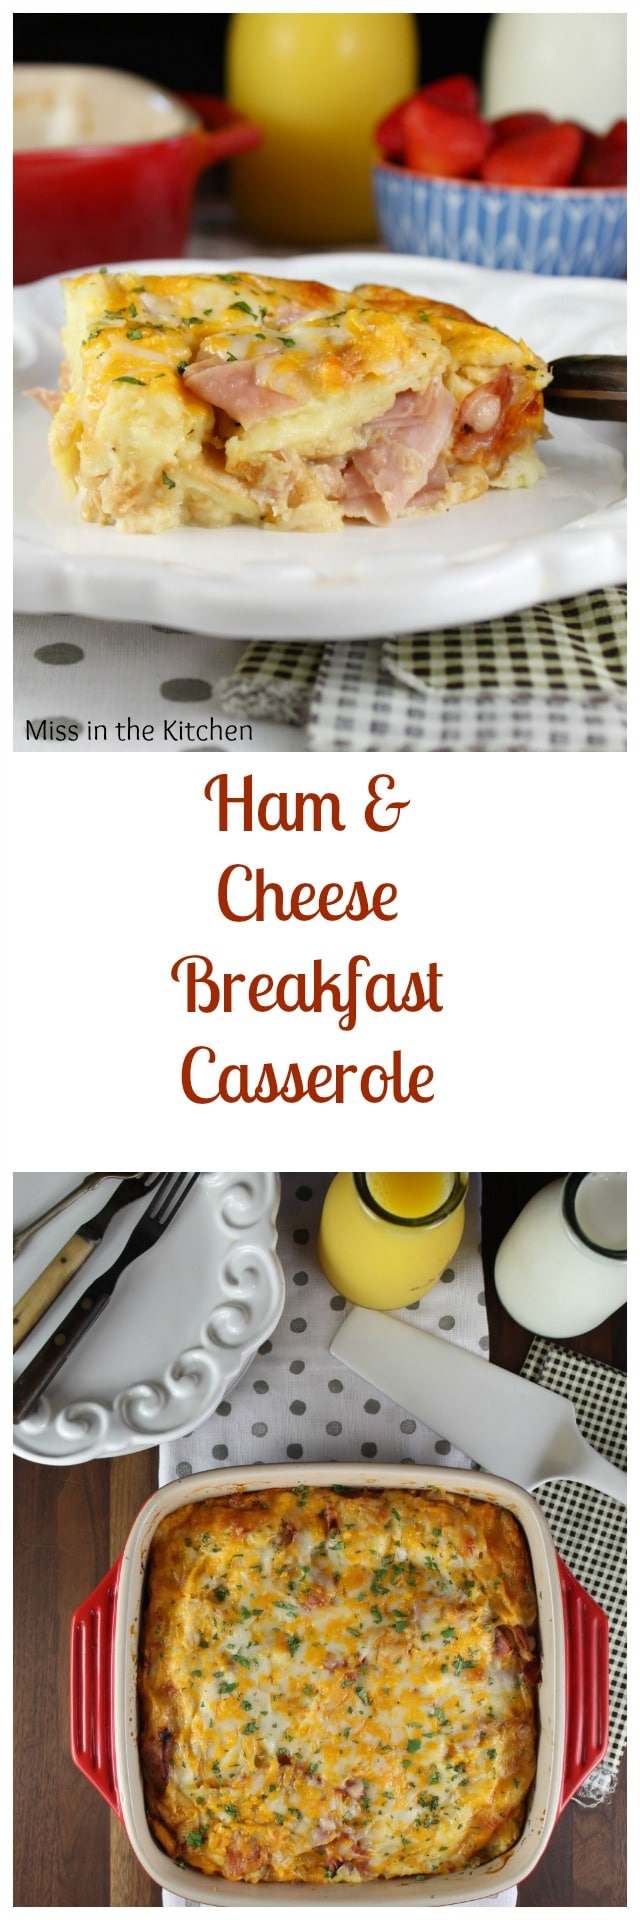 Ham and Cheese Breakfast Casserole - overnight recipe from MissintheKitchen.com #ad #CollectiveBias #BeyondTheSandwich